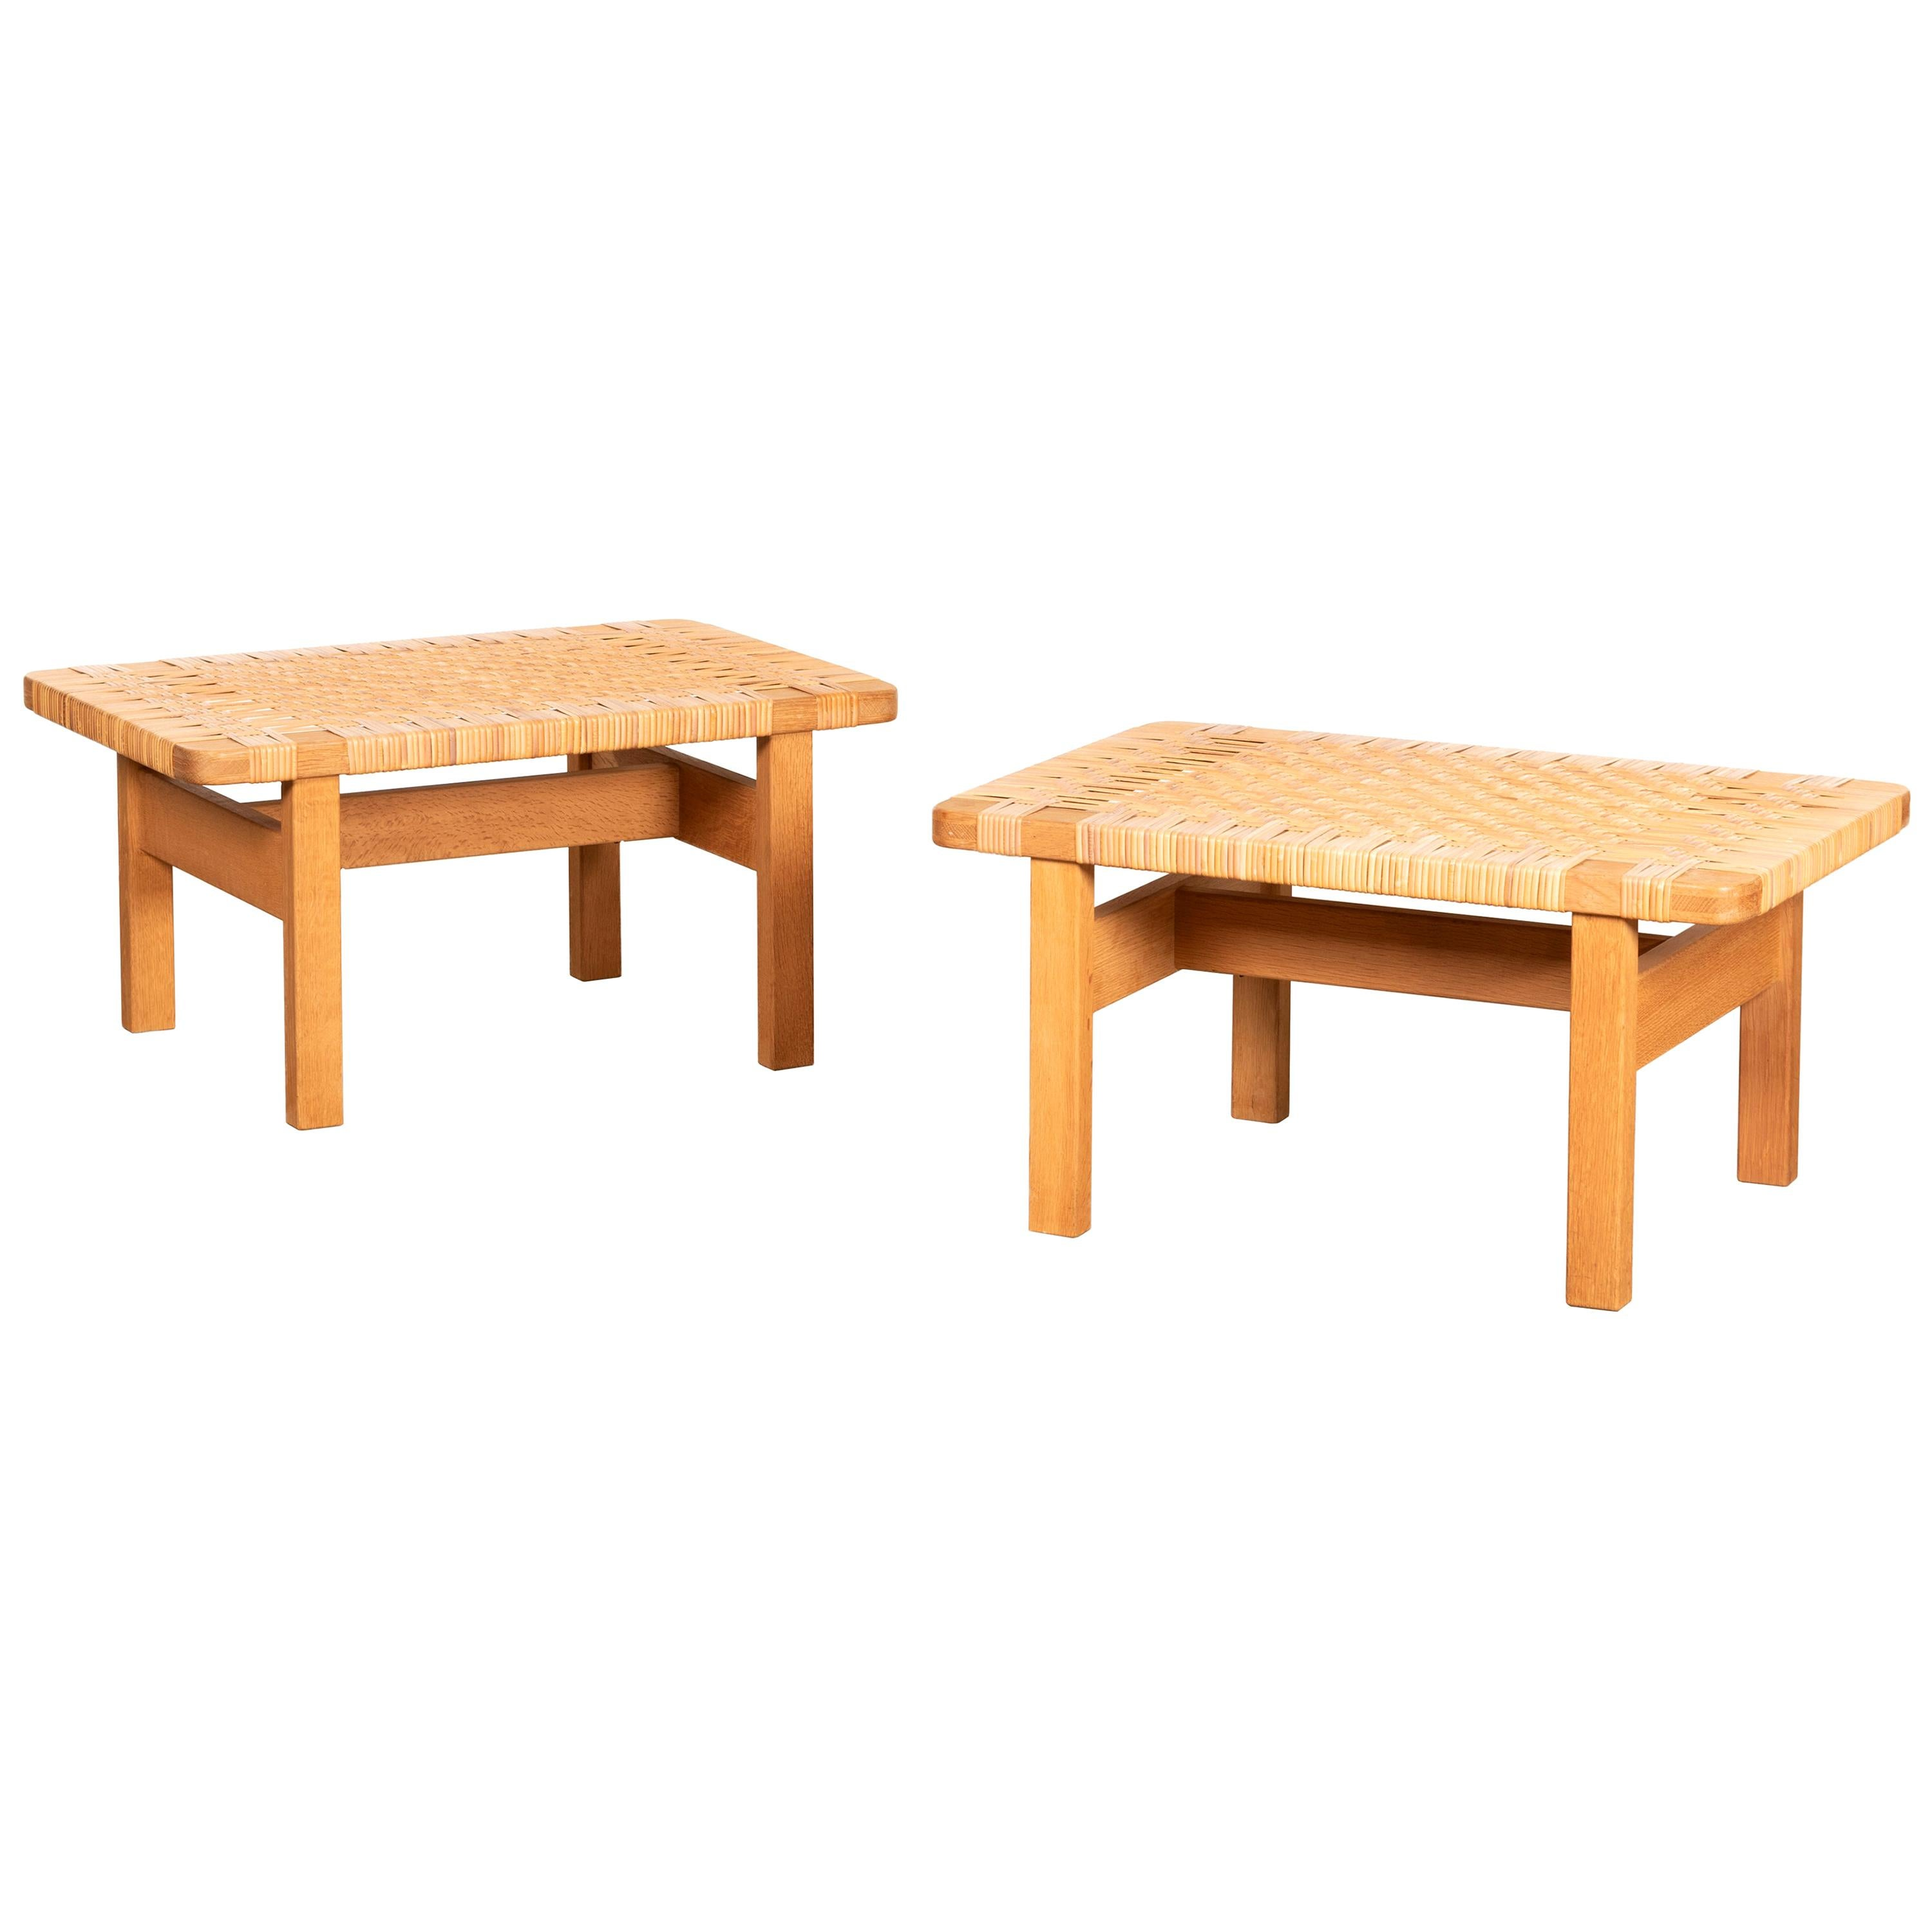 Børge Mogensen Set Benches Model 5273 in Natural Oak and Wicker for Fredericia